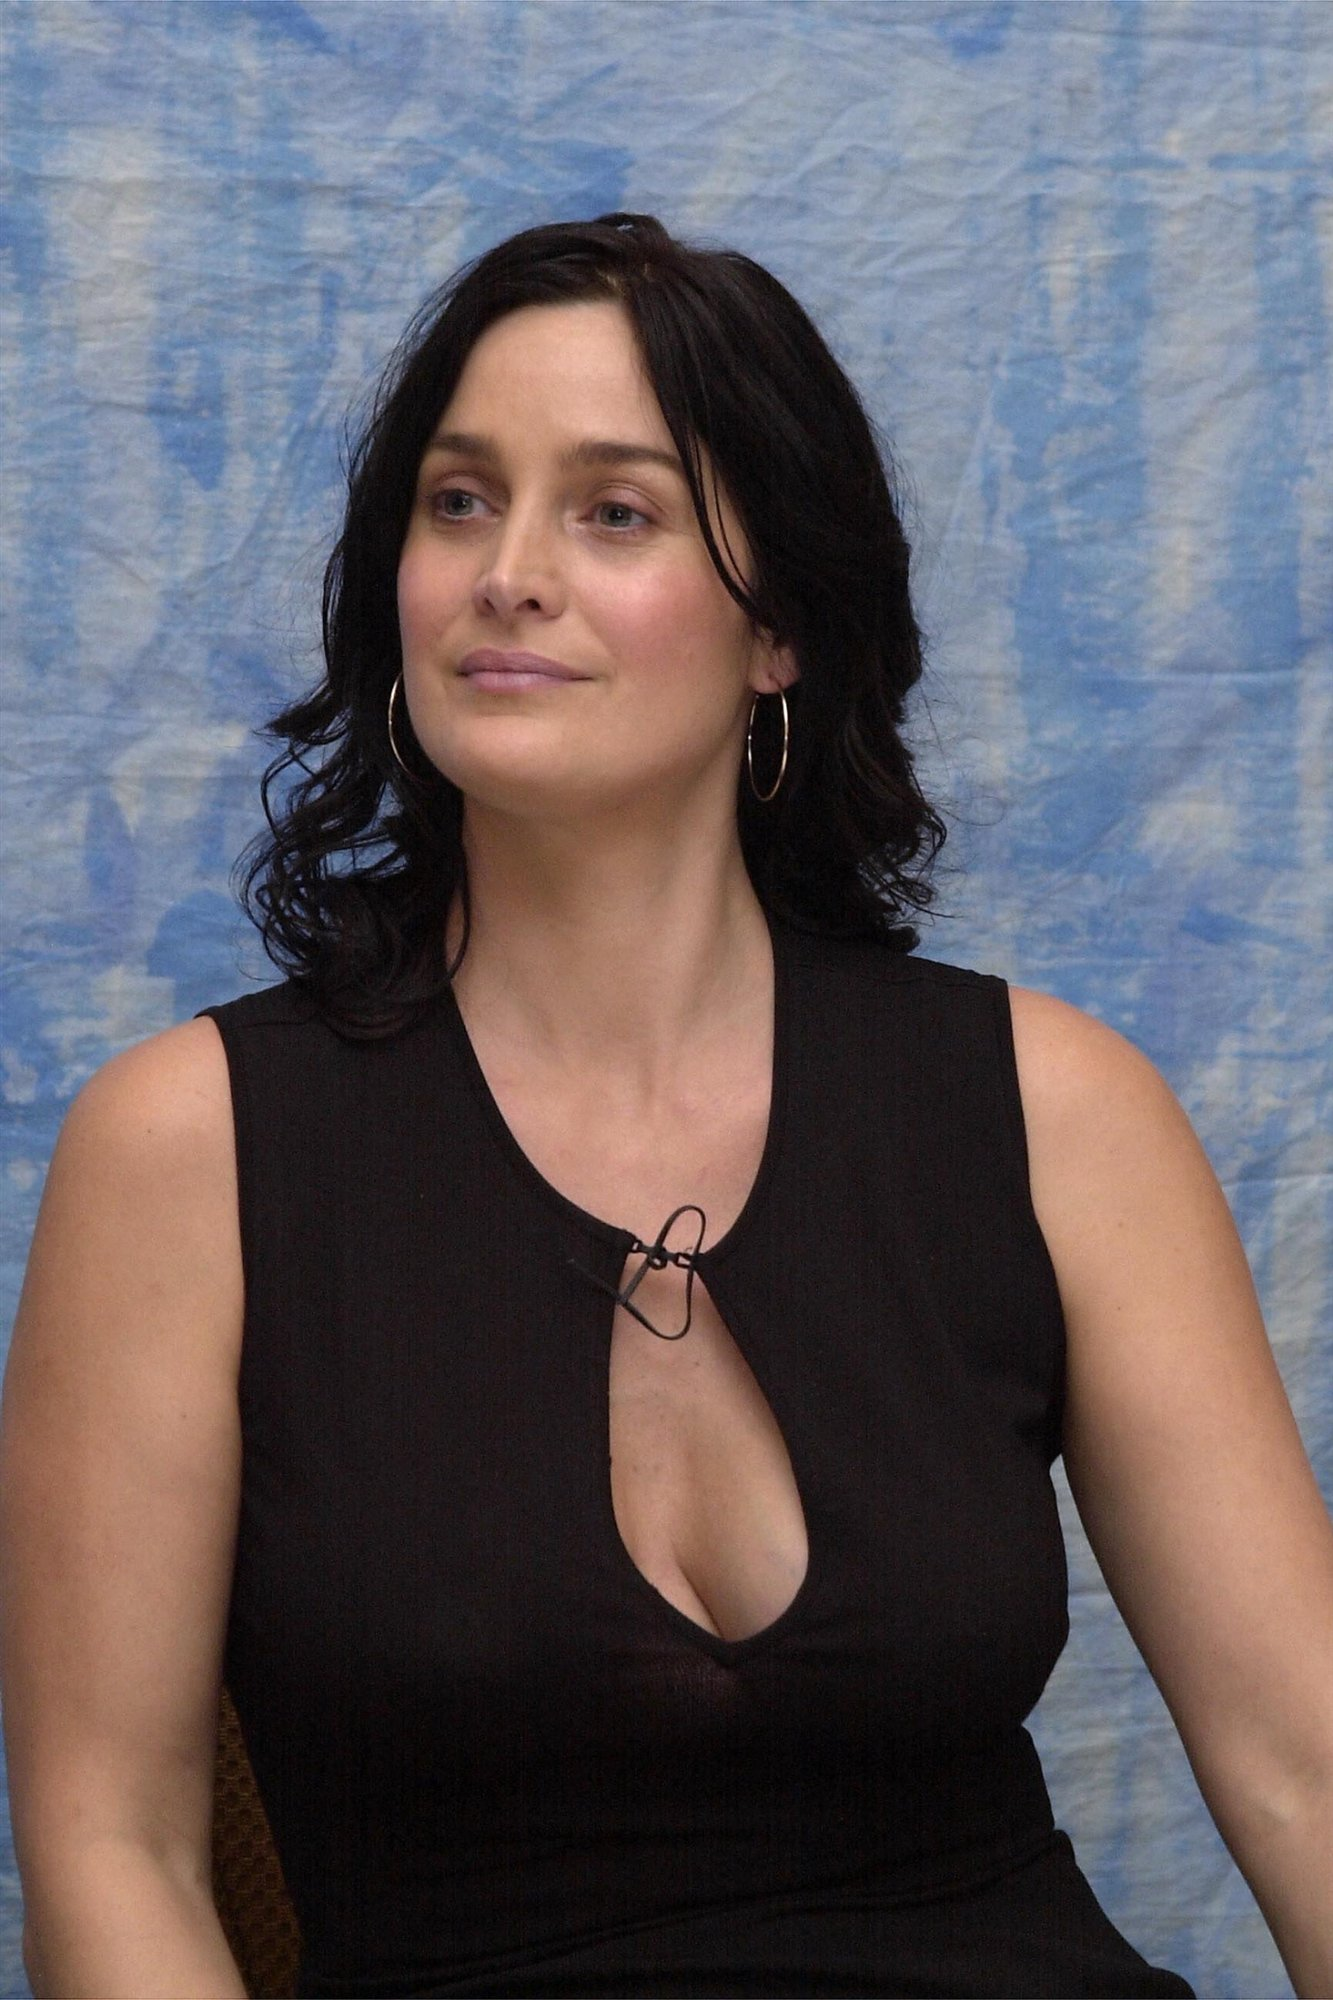 ... Carrie-Anne Moss Wallpapers High Resolution and Quality Download ...